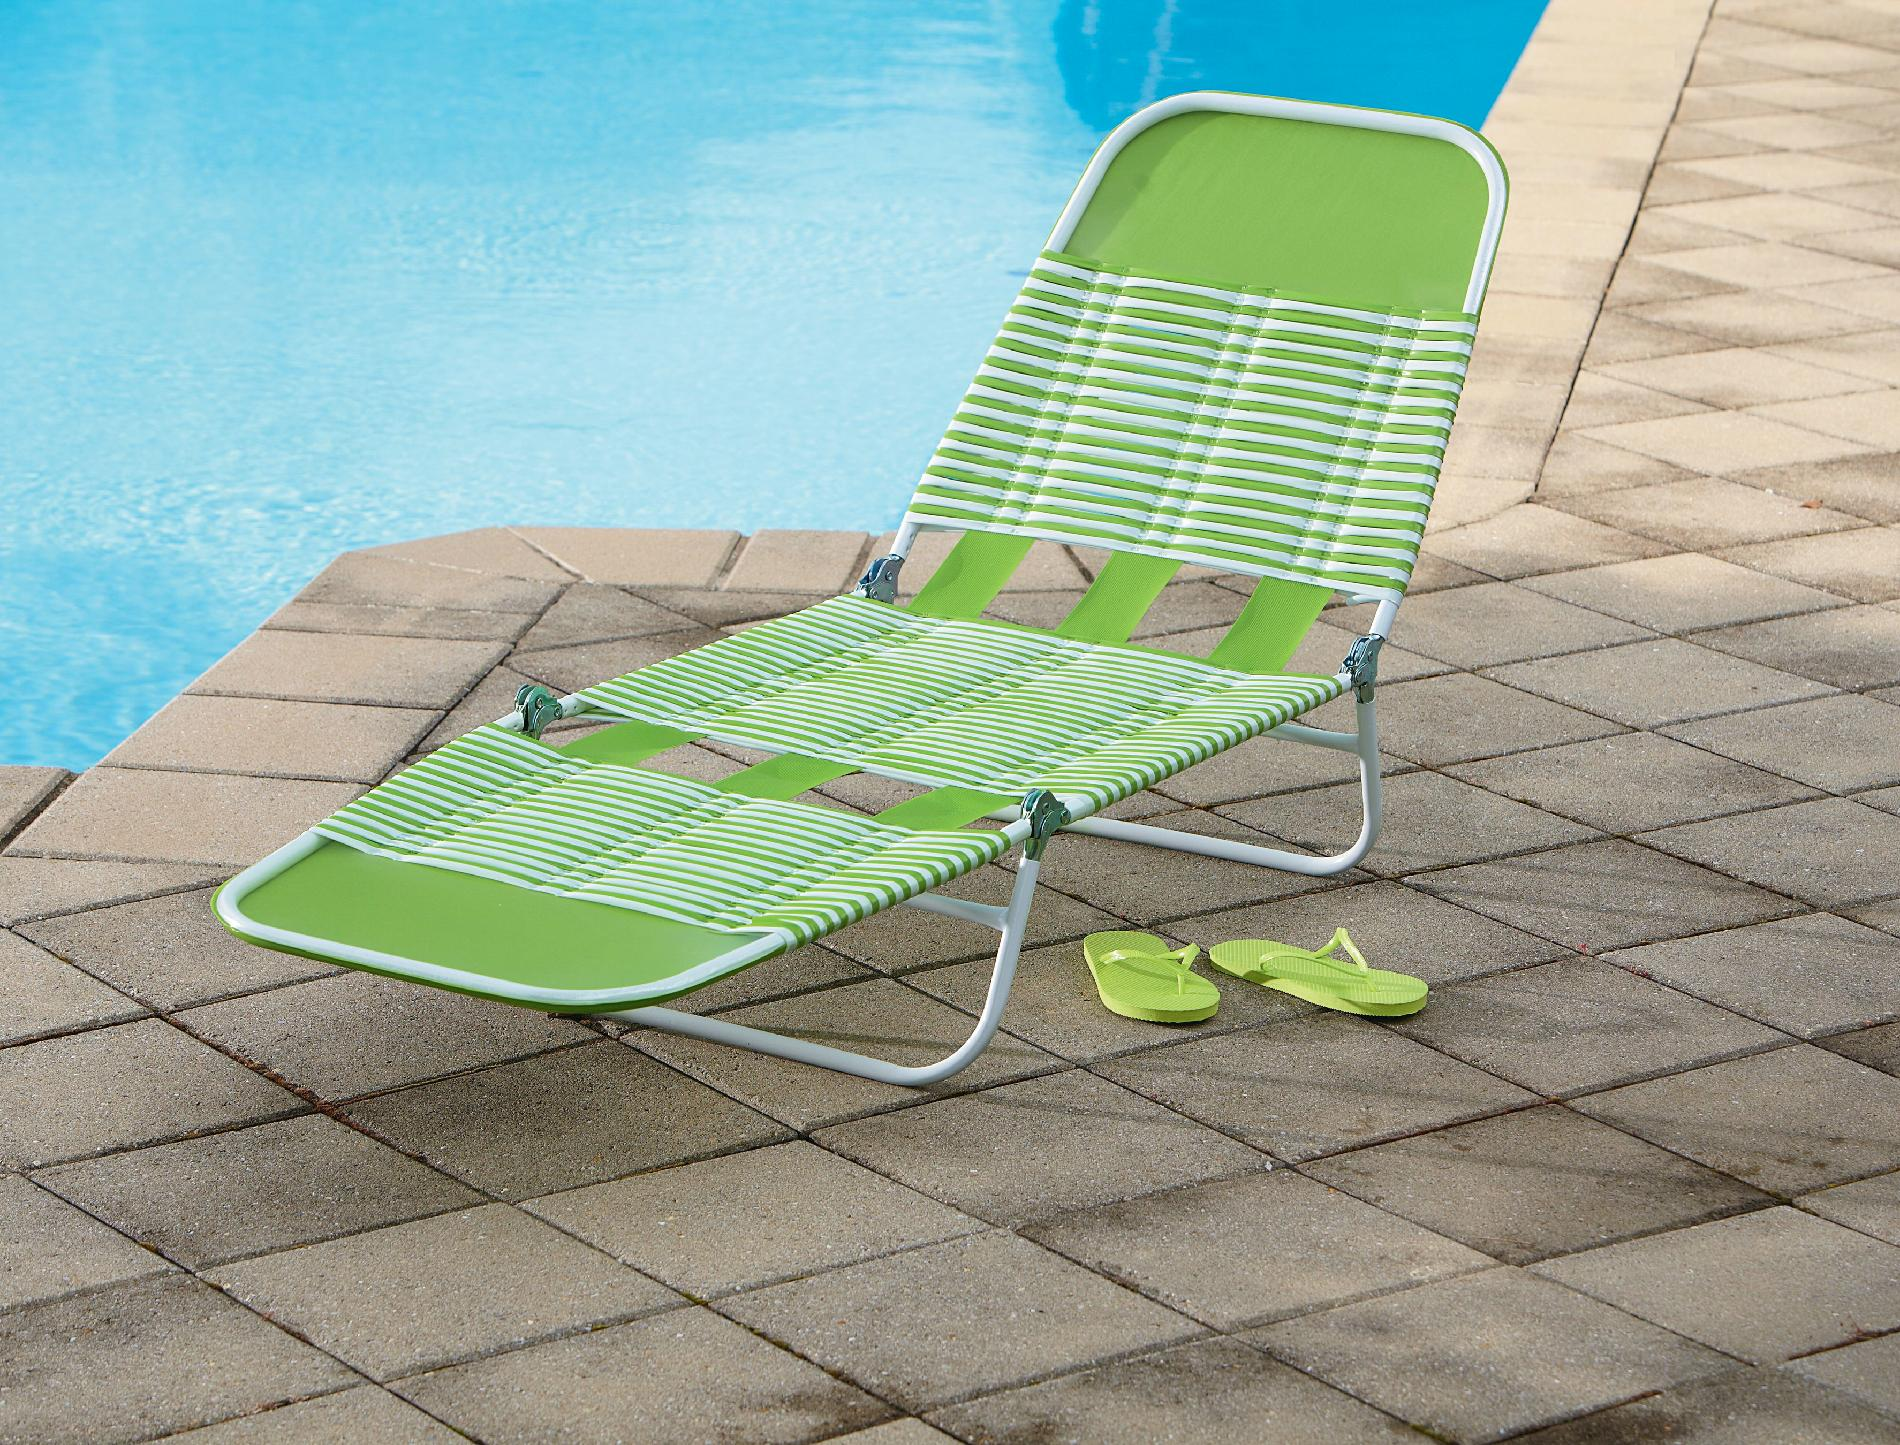 sears lounge chairs chair rental orlando essential garden pvc chaise lounge- green - outdoor living patio furniture